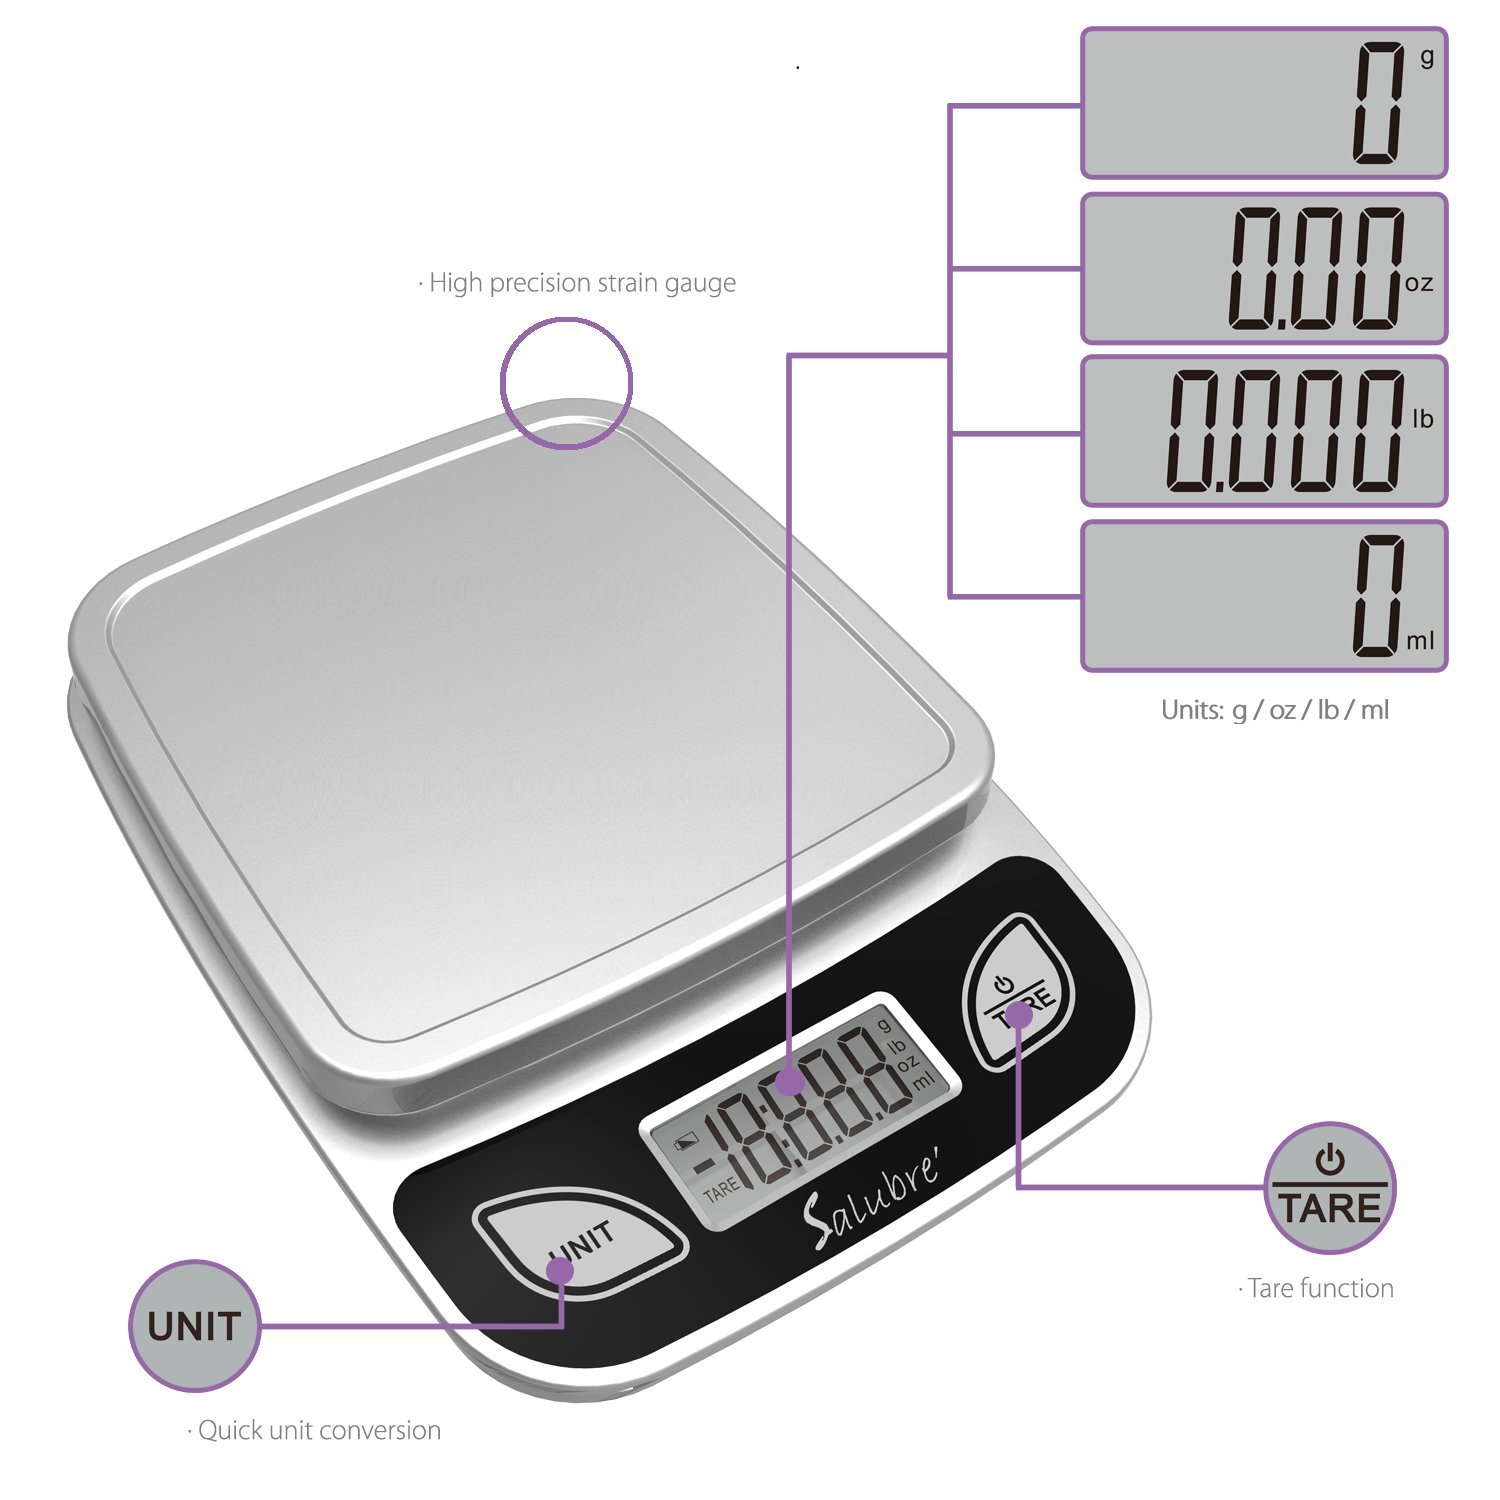 Digital Food Scale / Kitchen Scale / Postal Scale – Weigh in Pounds, Ounces, Grams - Precise Weight Scale 1g (0.04oz) to 11 lbs - Batteries Included by REM Concepts (Image #4)